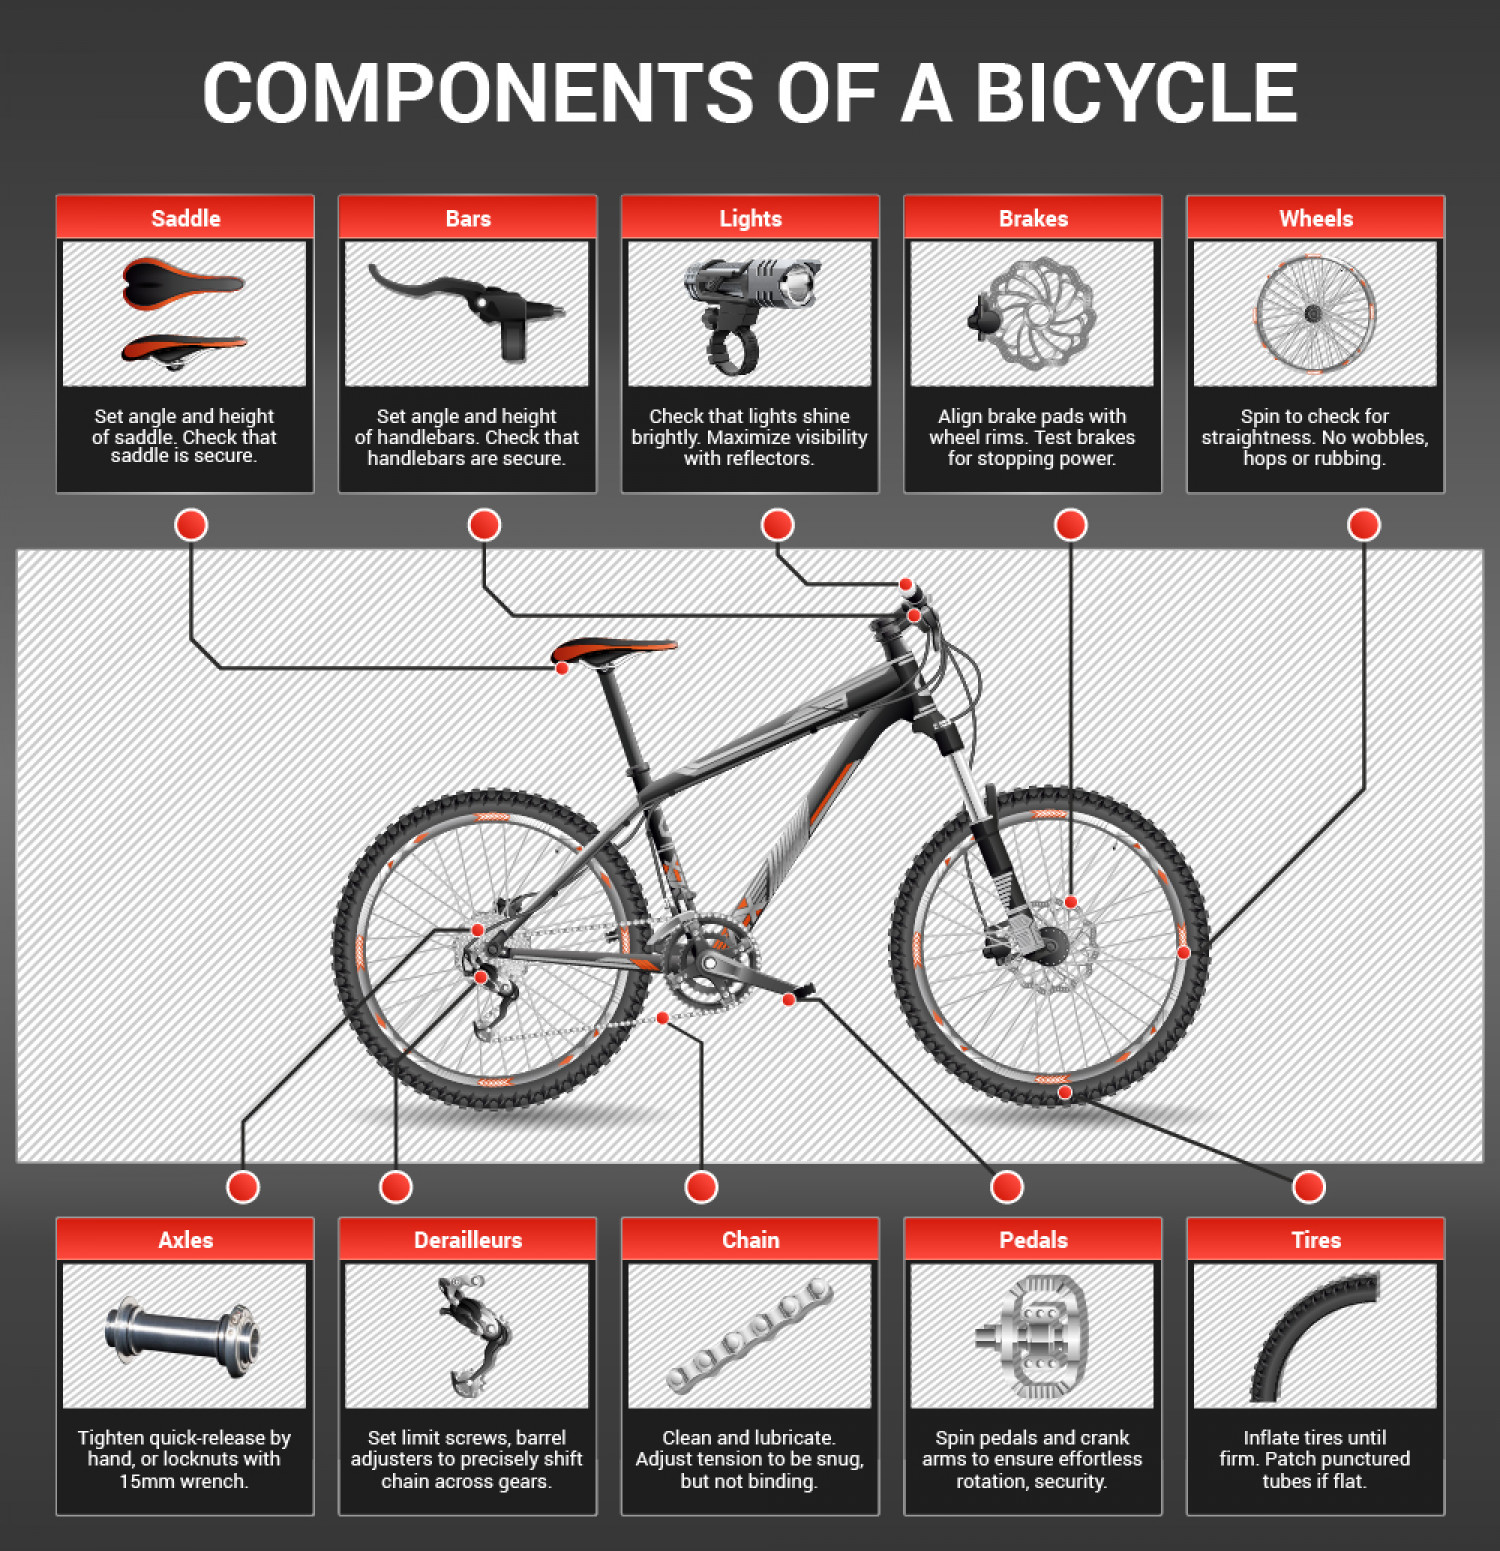 Components of a Bike Infographic